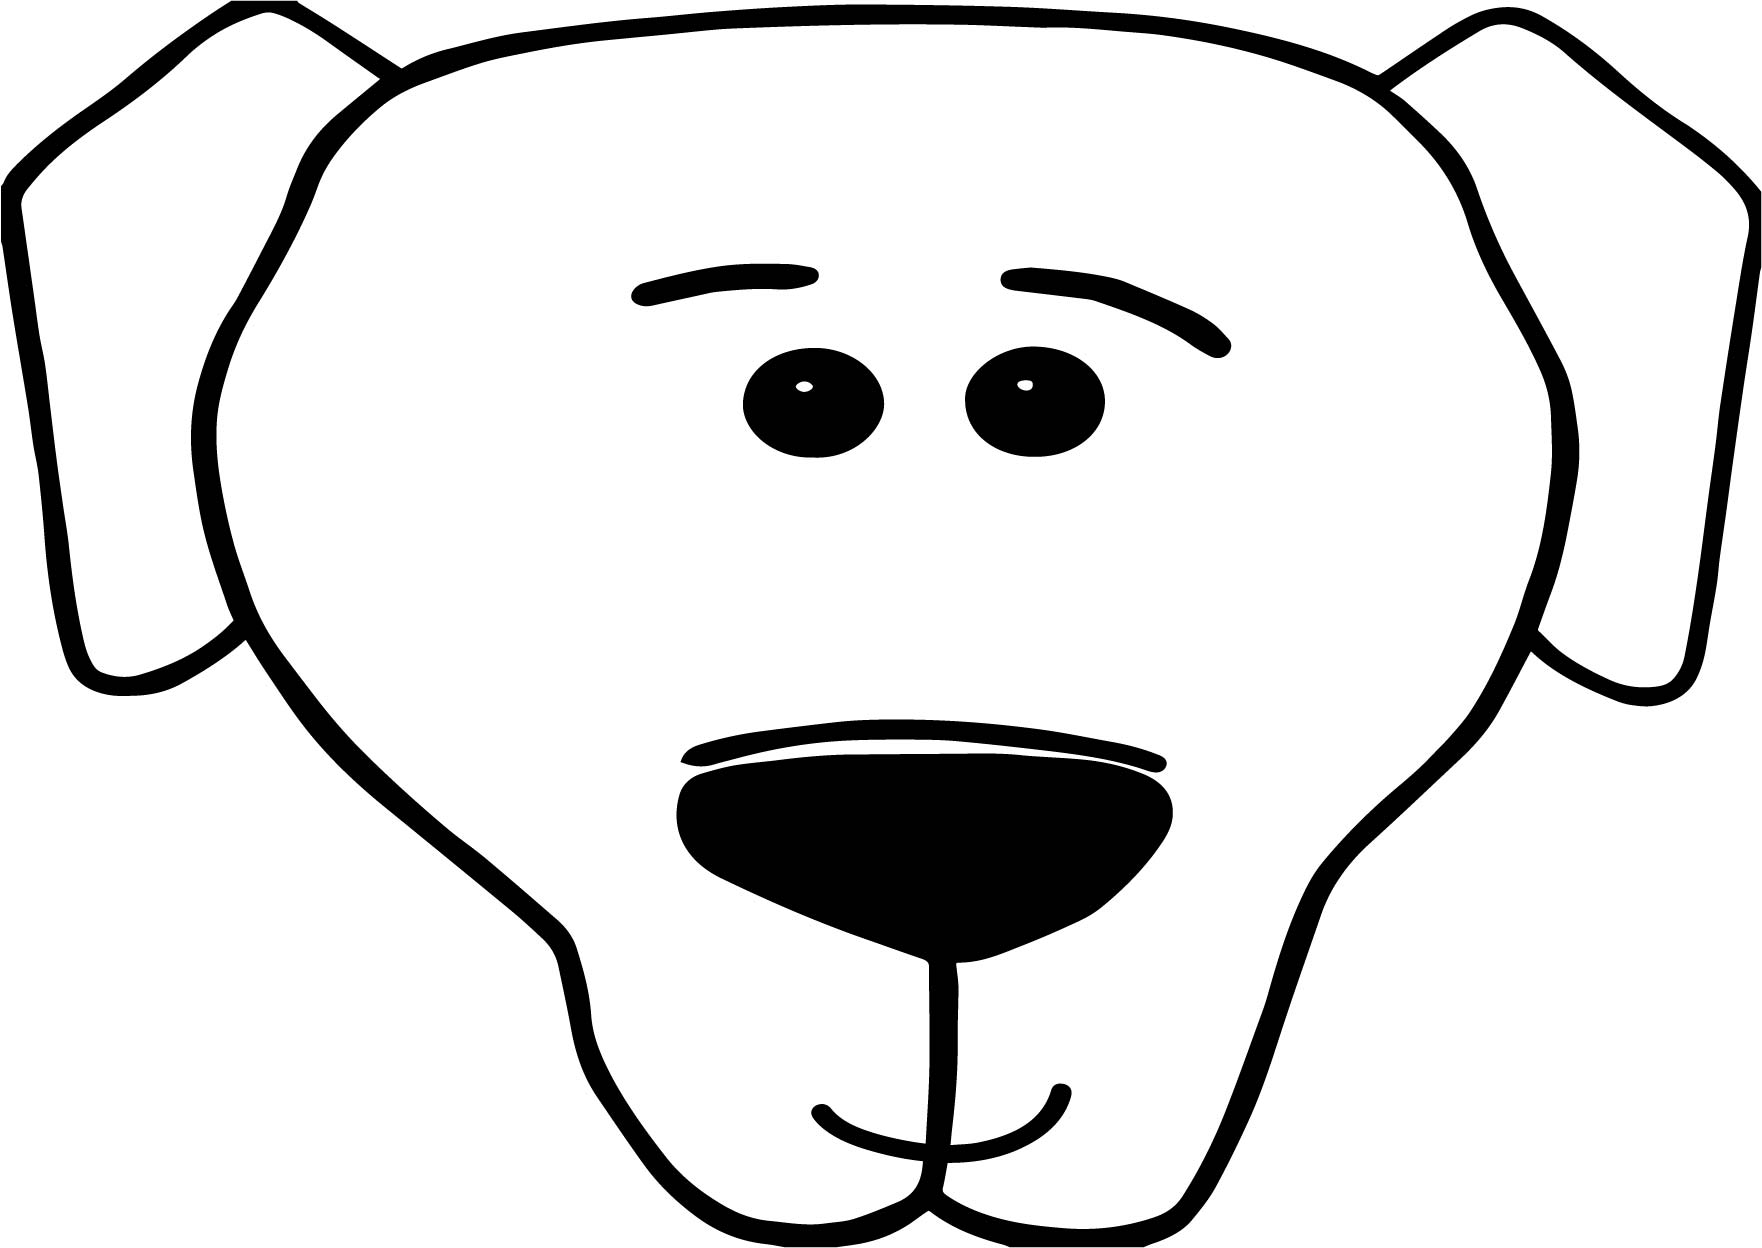 dog face coloring pages bolt dog face coloring pages wecoloringpagecom coloring face pages dog